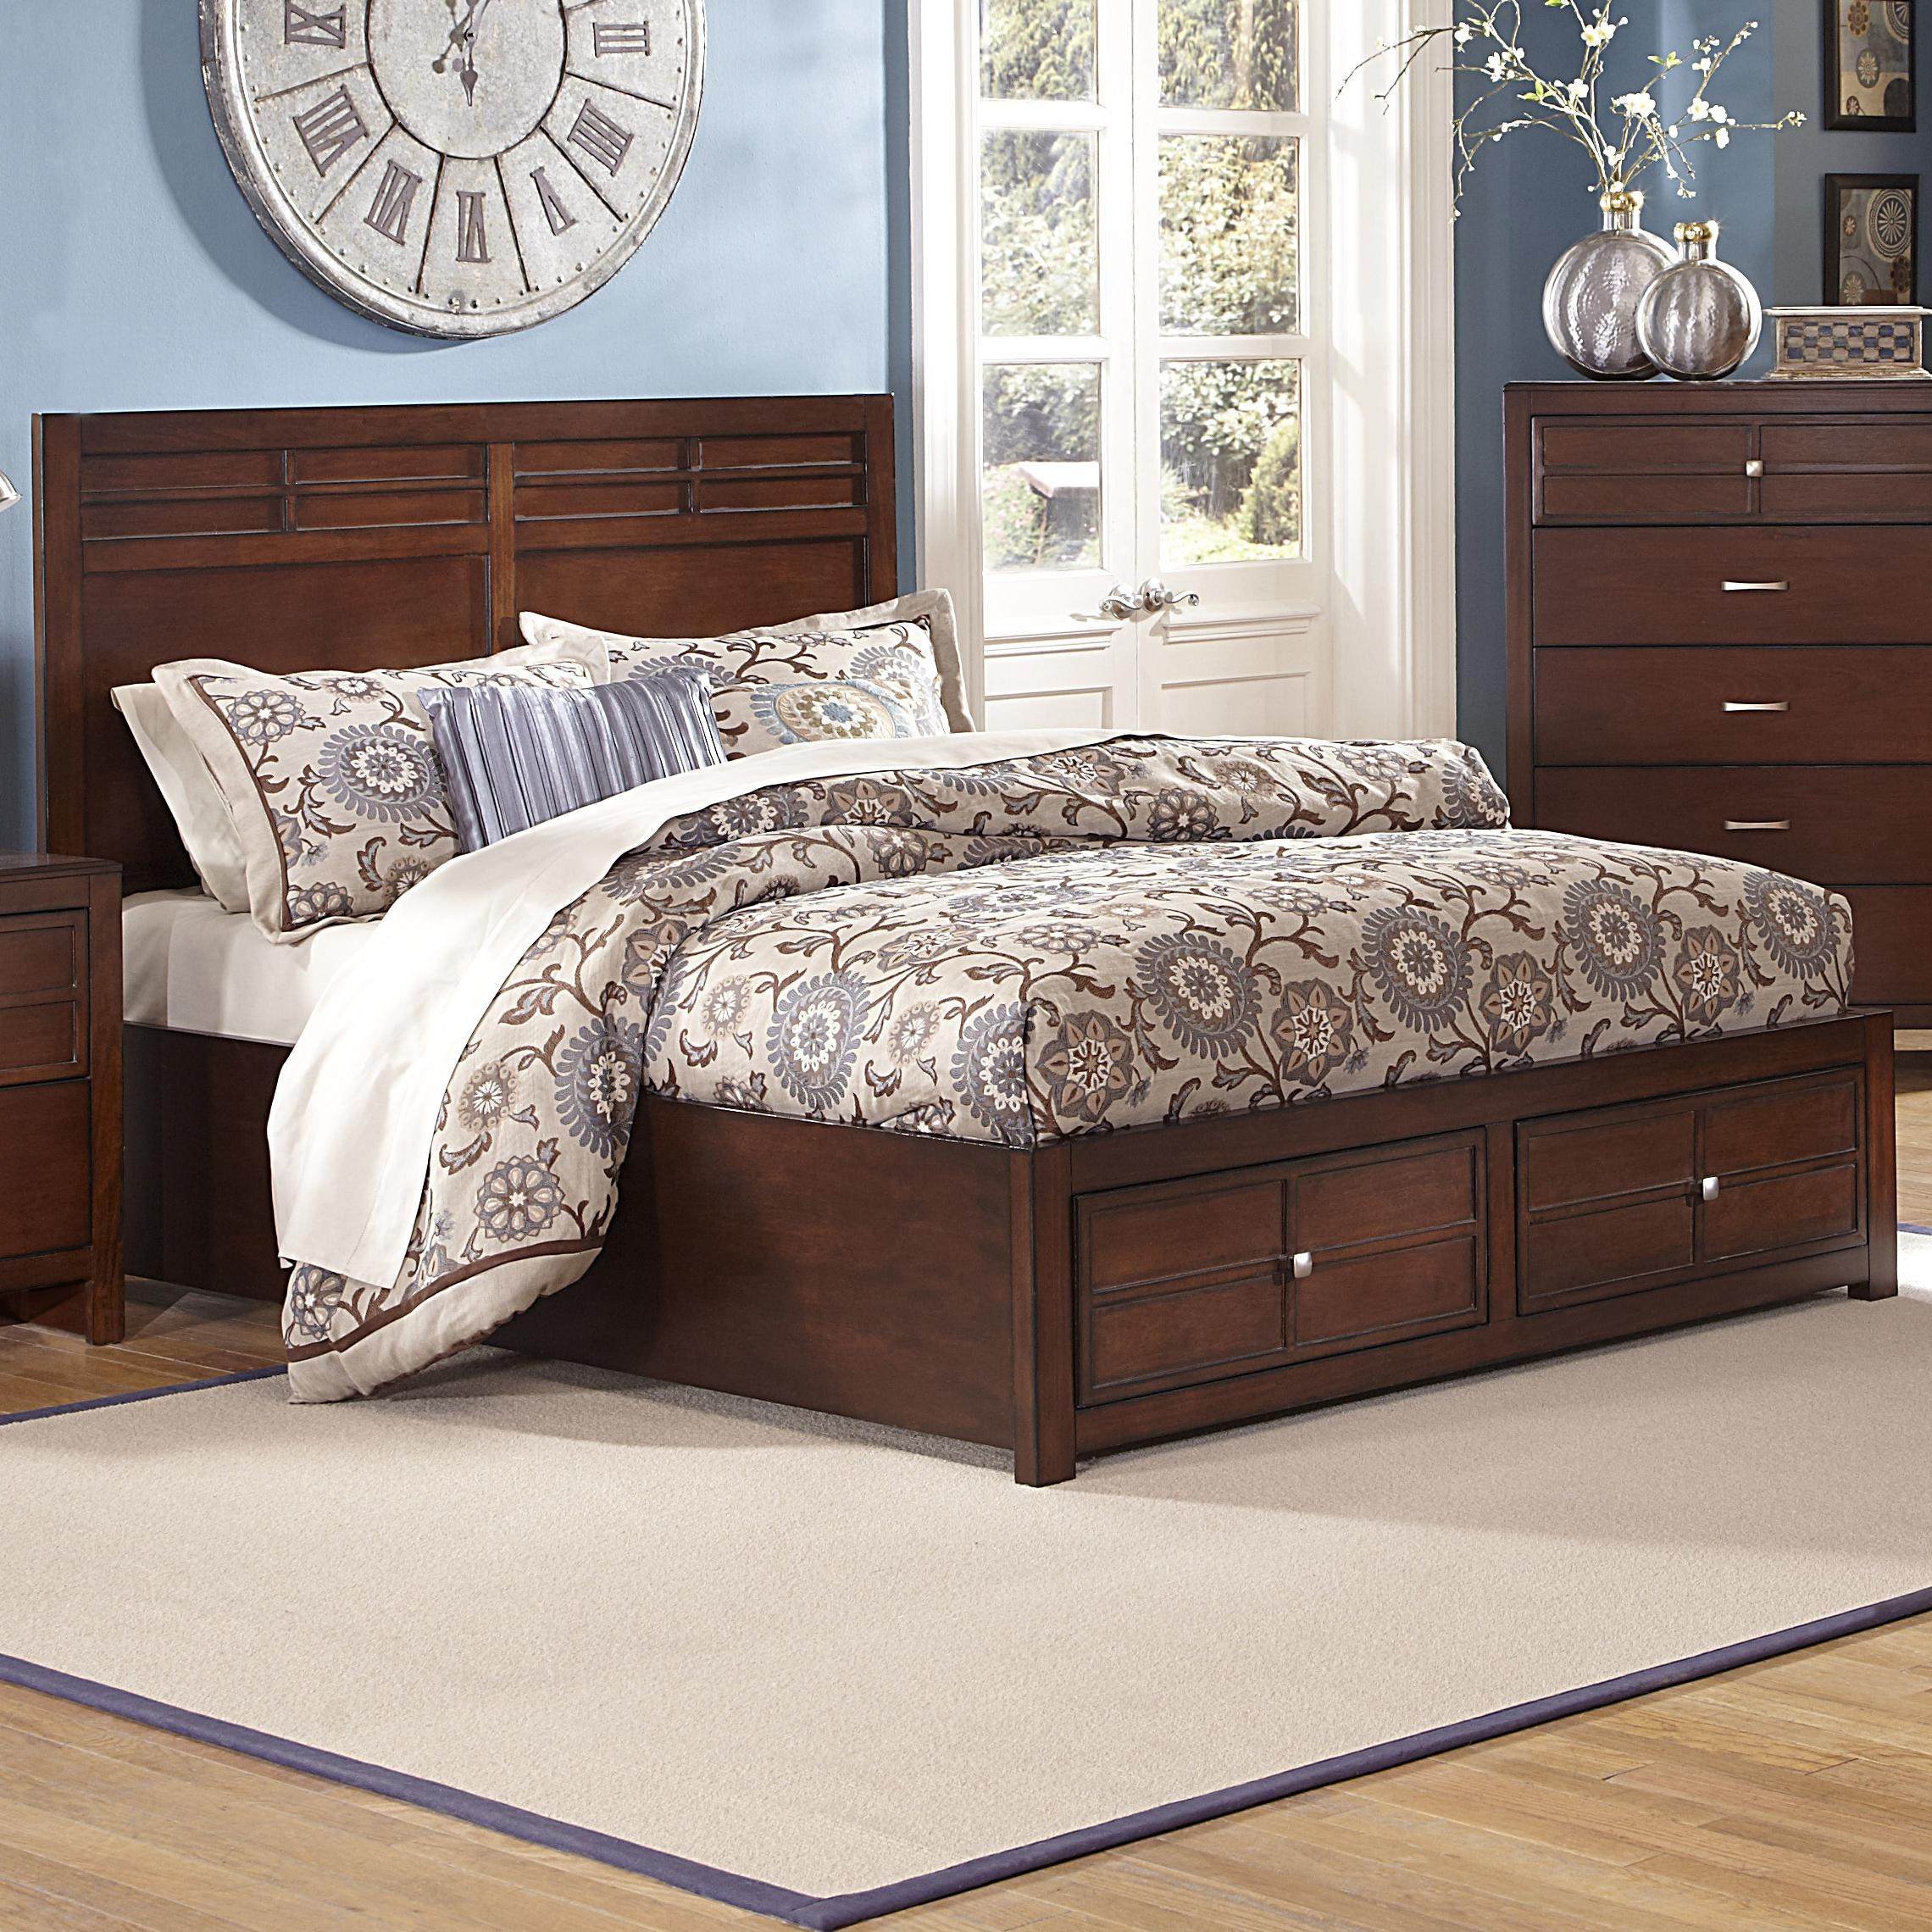 California King Storage Bed Large Size Of Bed Frames Wallpaperhd Costco Bed Frame California